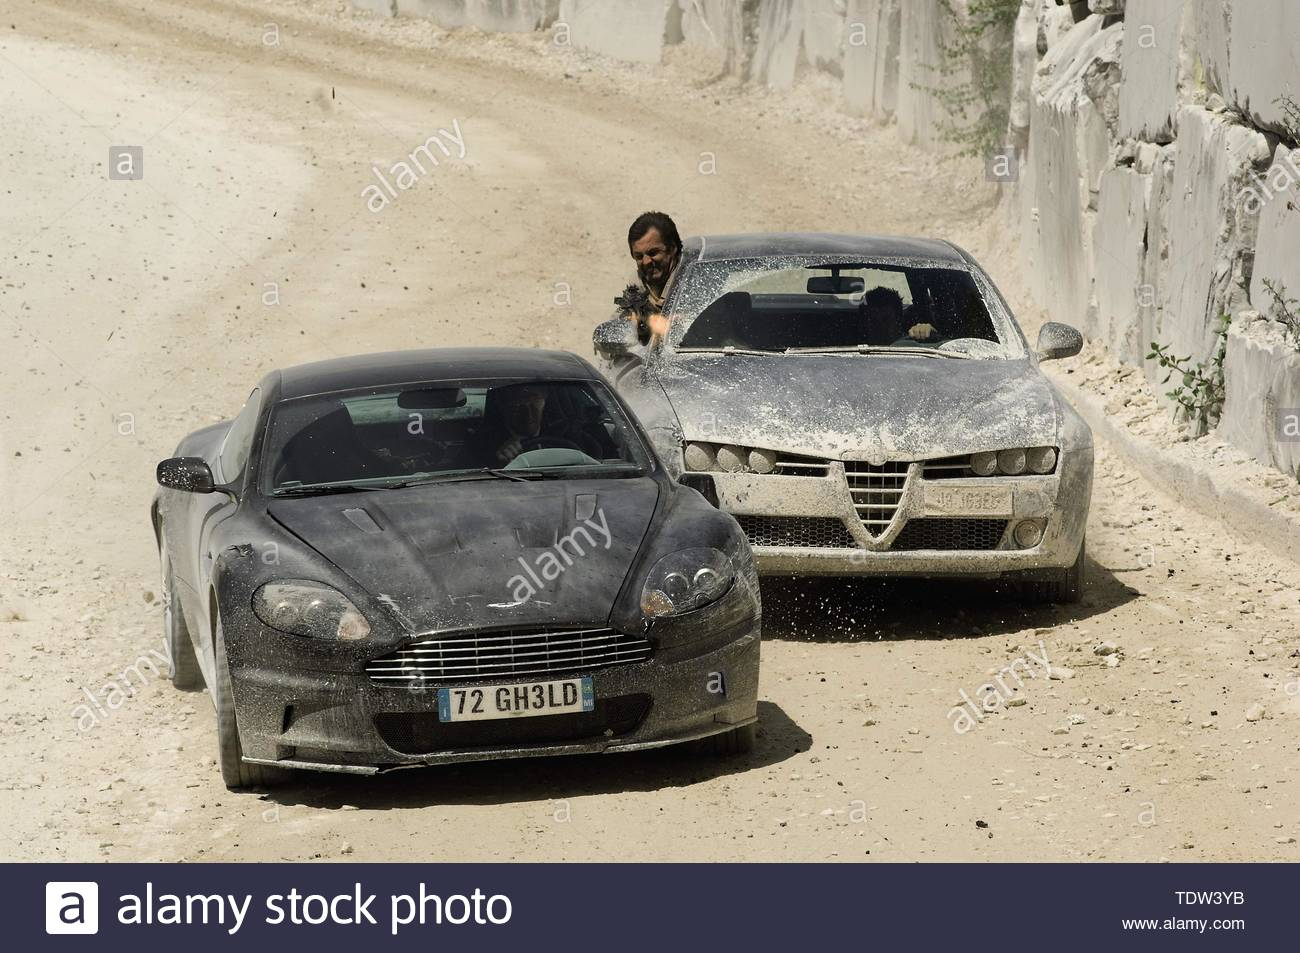 Undated handout file photo issued by United Artists Corporation of a car chase scene in Quantum of Solace featuring the 2008 Aston Martin 6 Litre V12 DBS 2-Door Coupe used by Daniel Craig. The deliberate destruction of James Bond's pristine Aston Martin was 'too much' for stunt driver Ben Collins to watch. - Stock Image